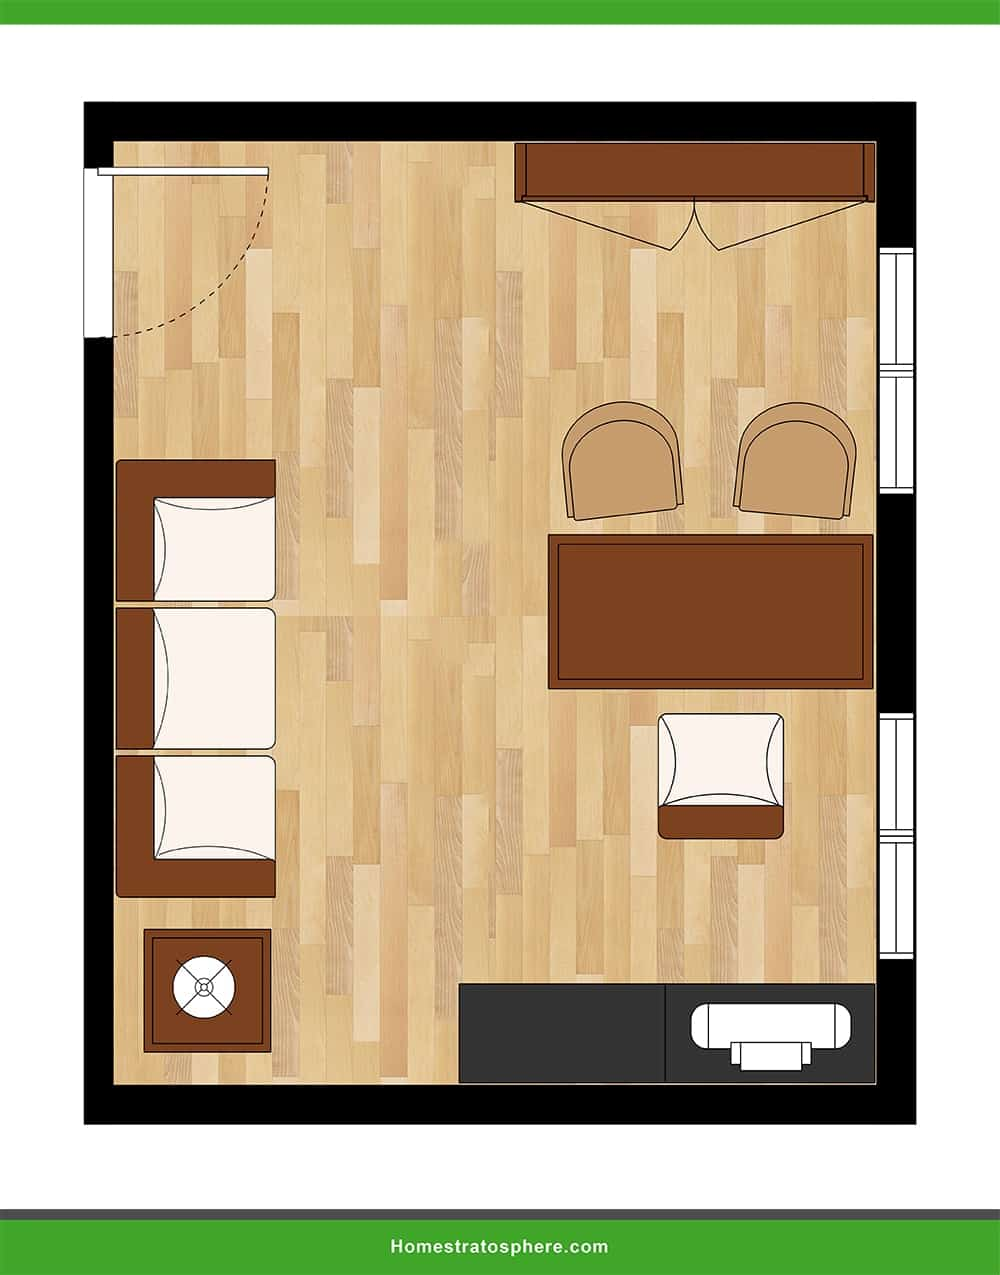 25 Home Office Layouts Illustrated Floor Plans Home Stratosphere